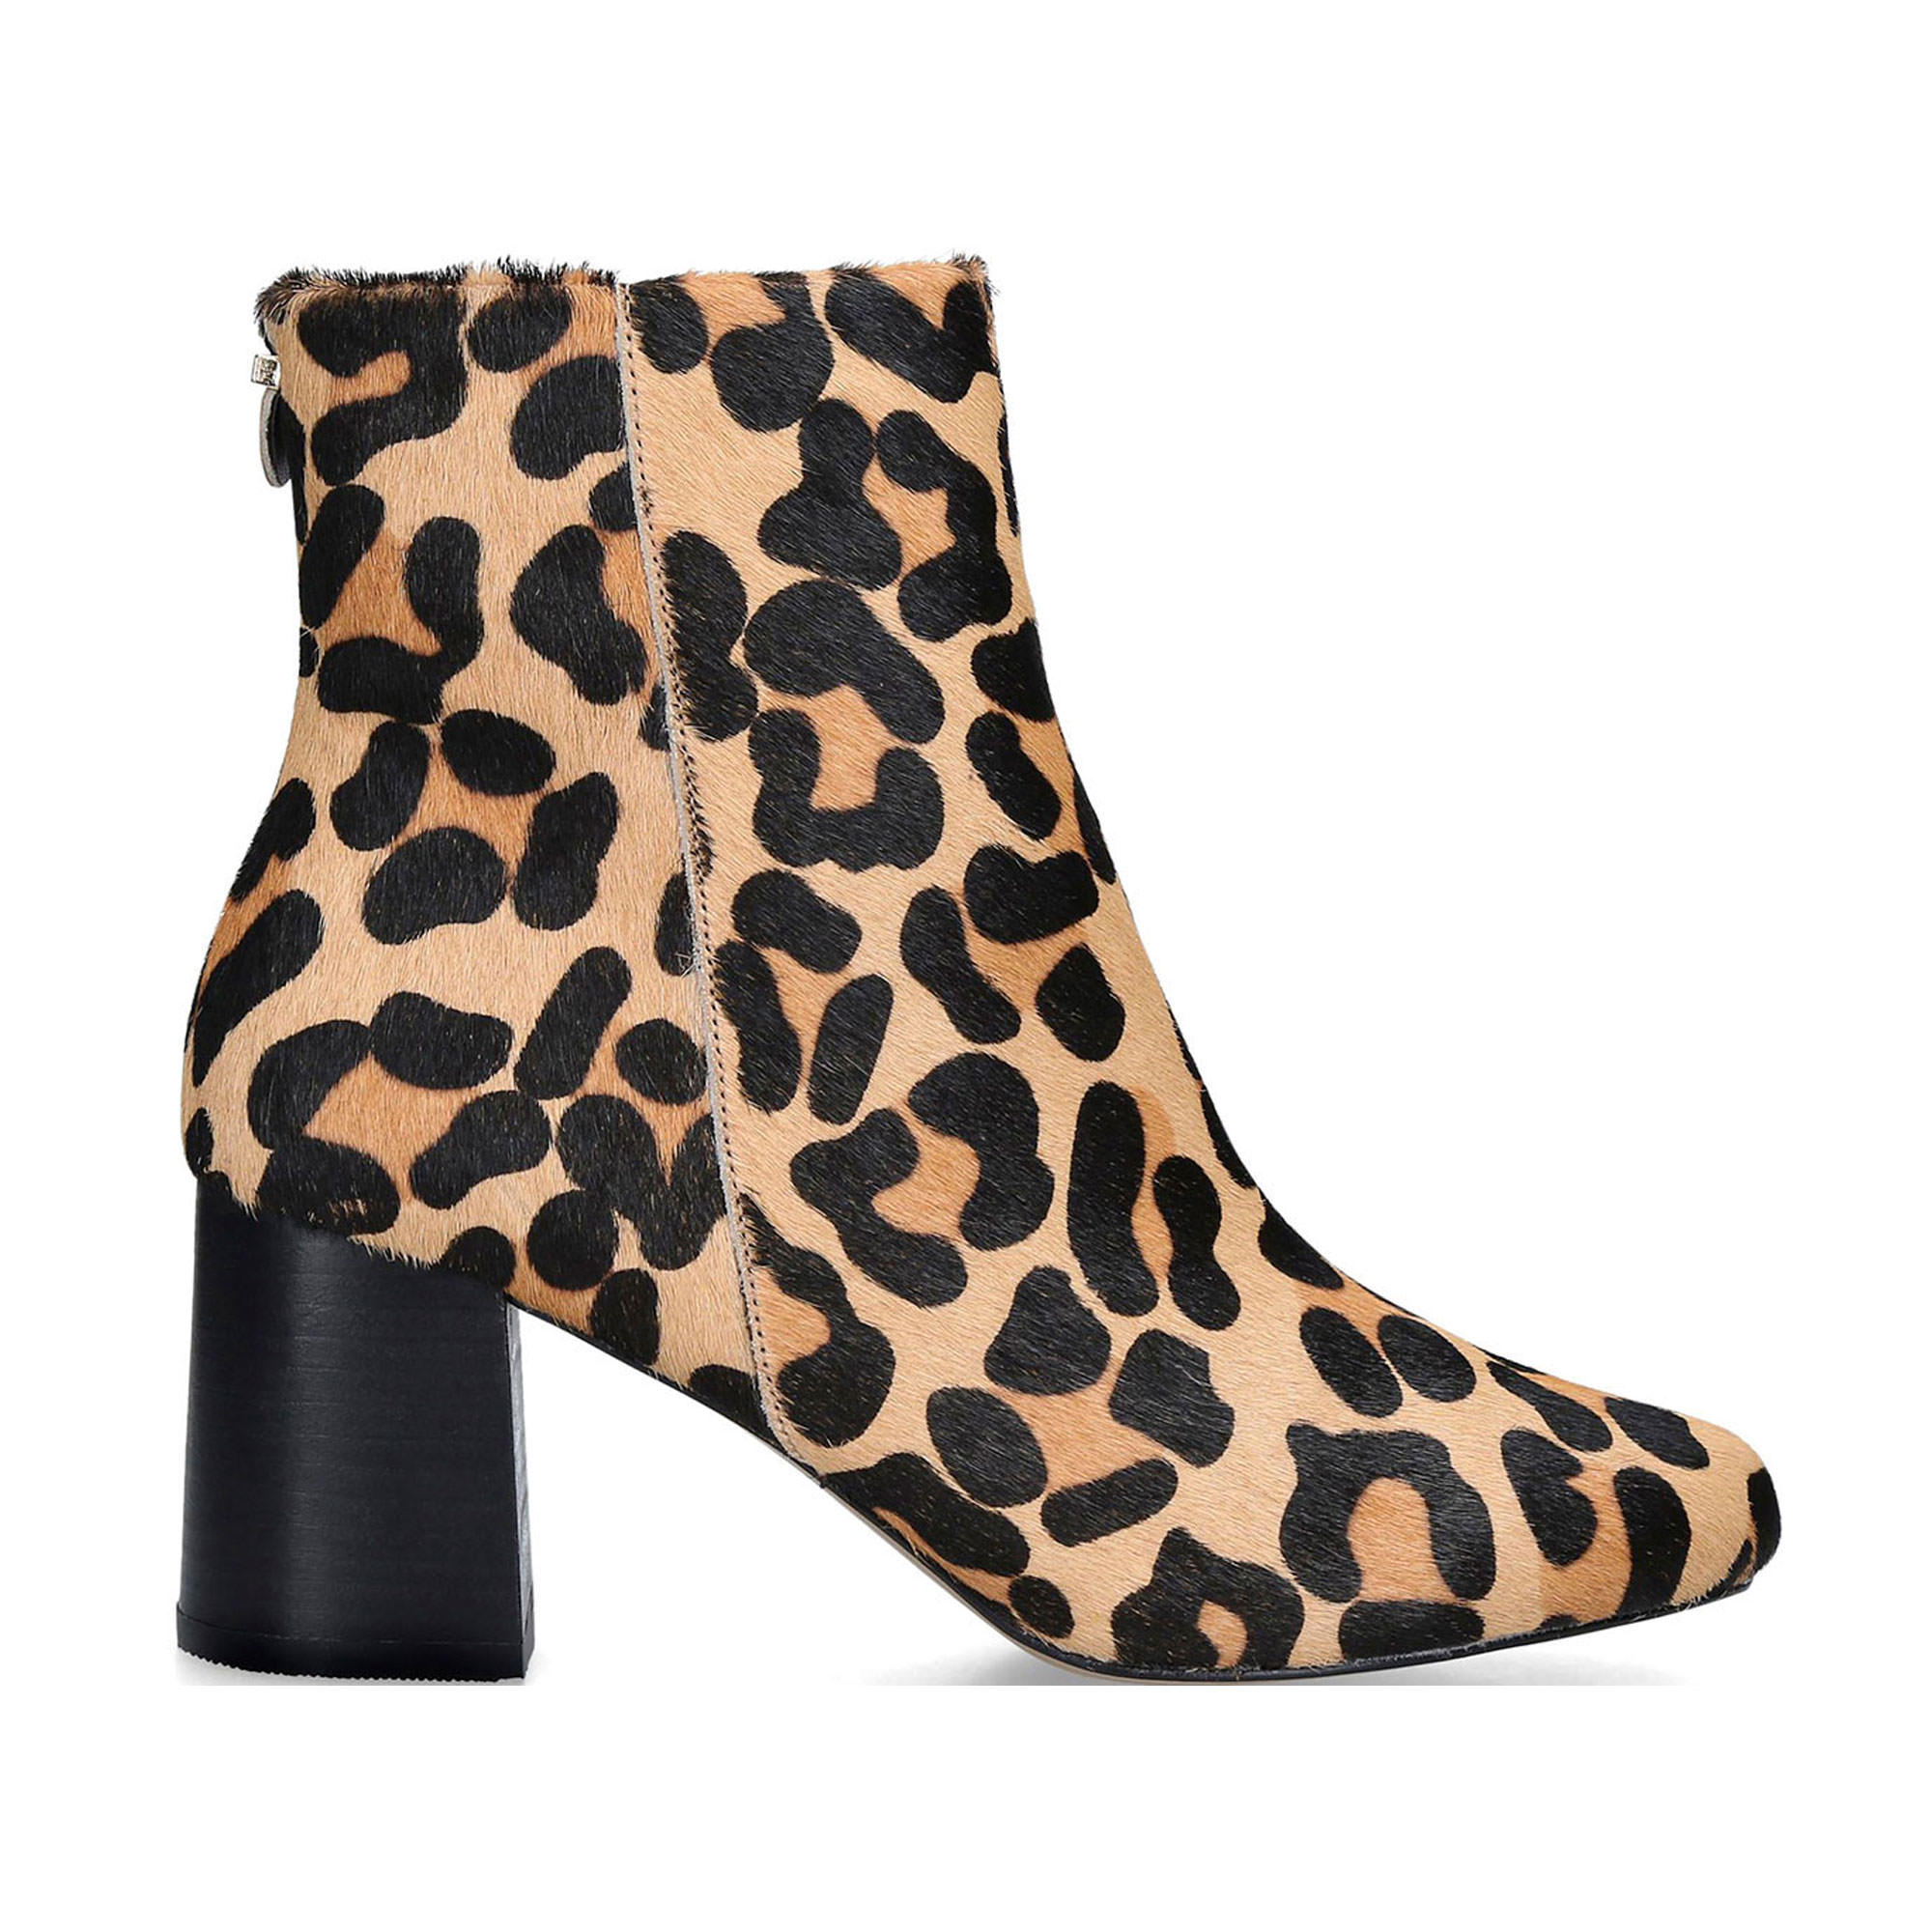 58003906036119BROWN: Smash Ankle Boot